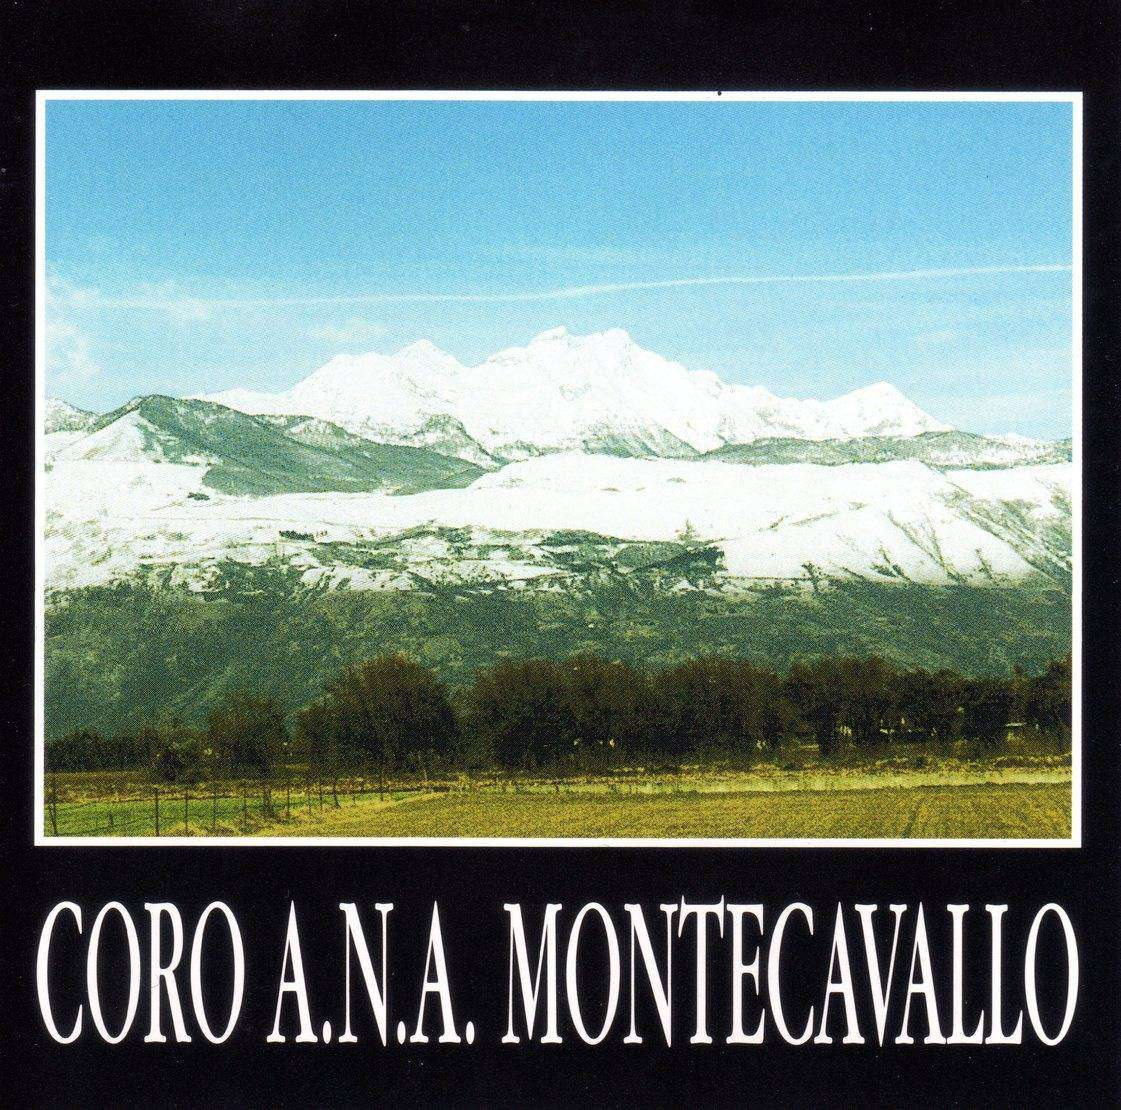 CD1 Coro ANA Montecavallo